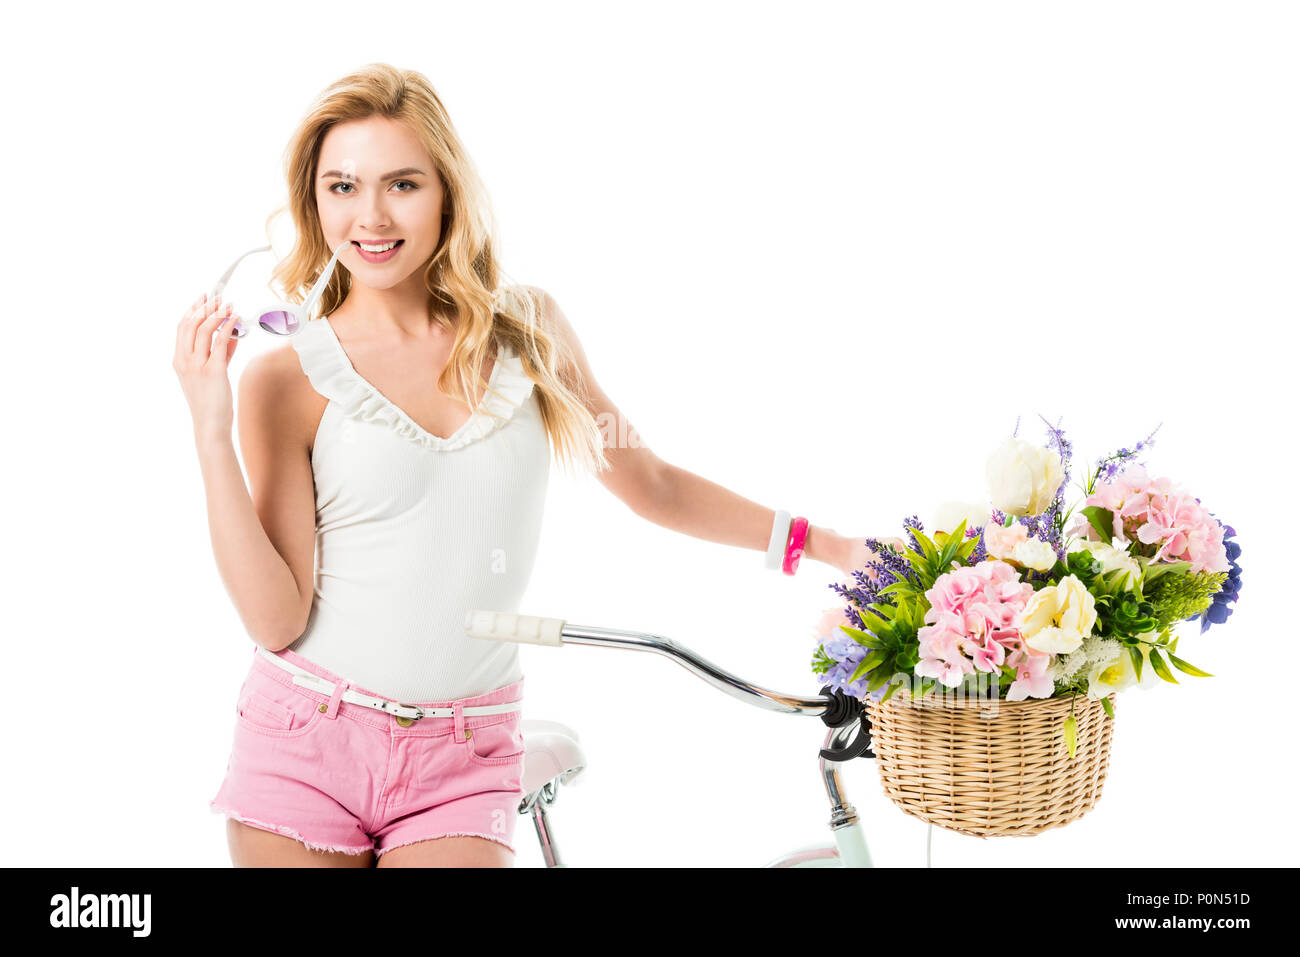 Attractive young woman standing by bicycle with flowers in basket isolated on white - Stock Image